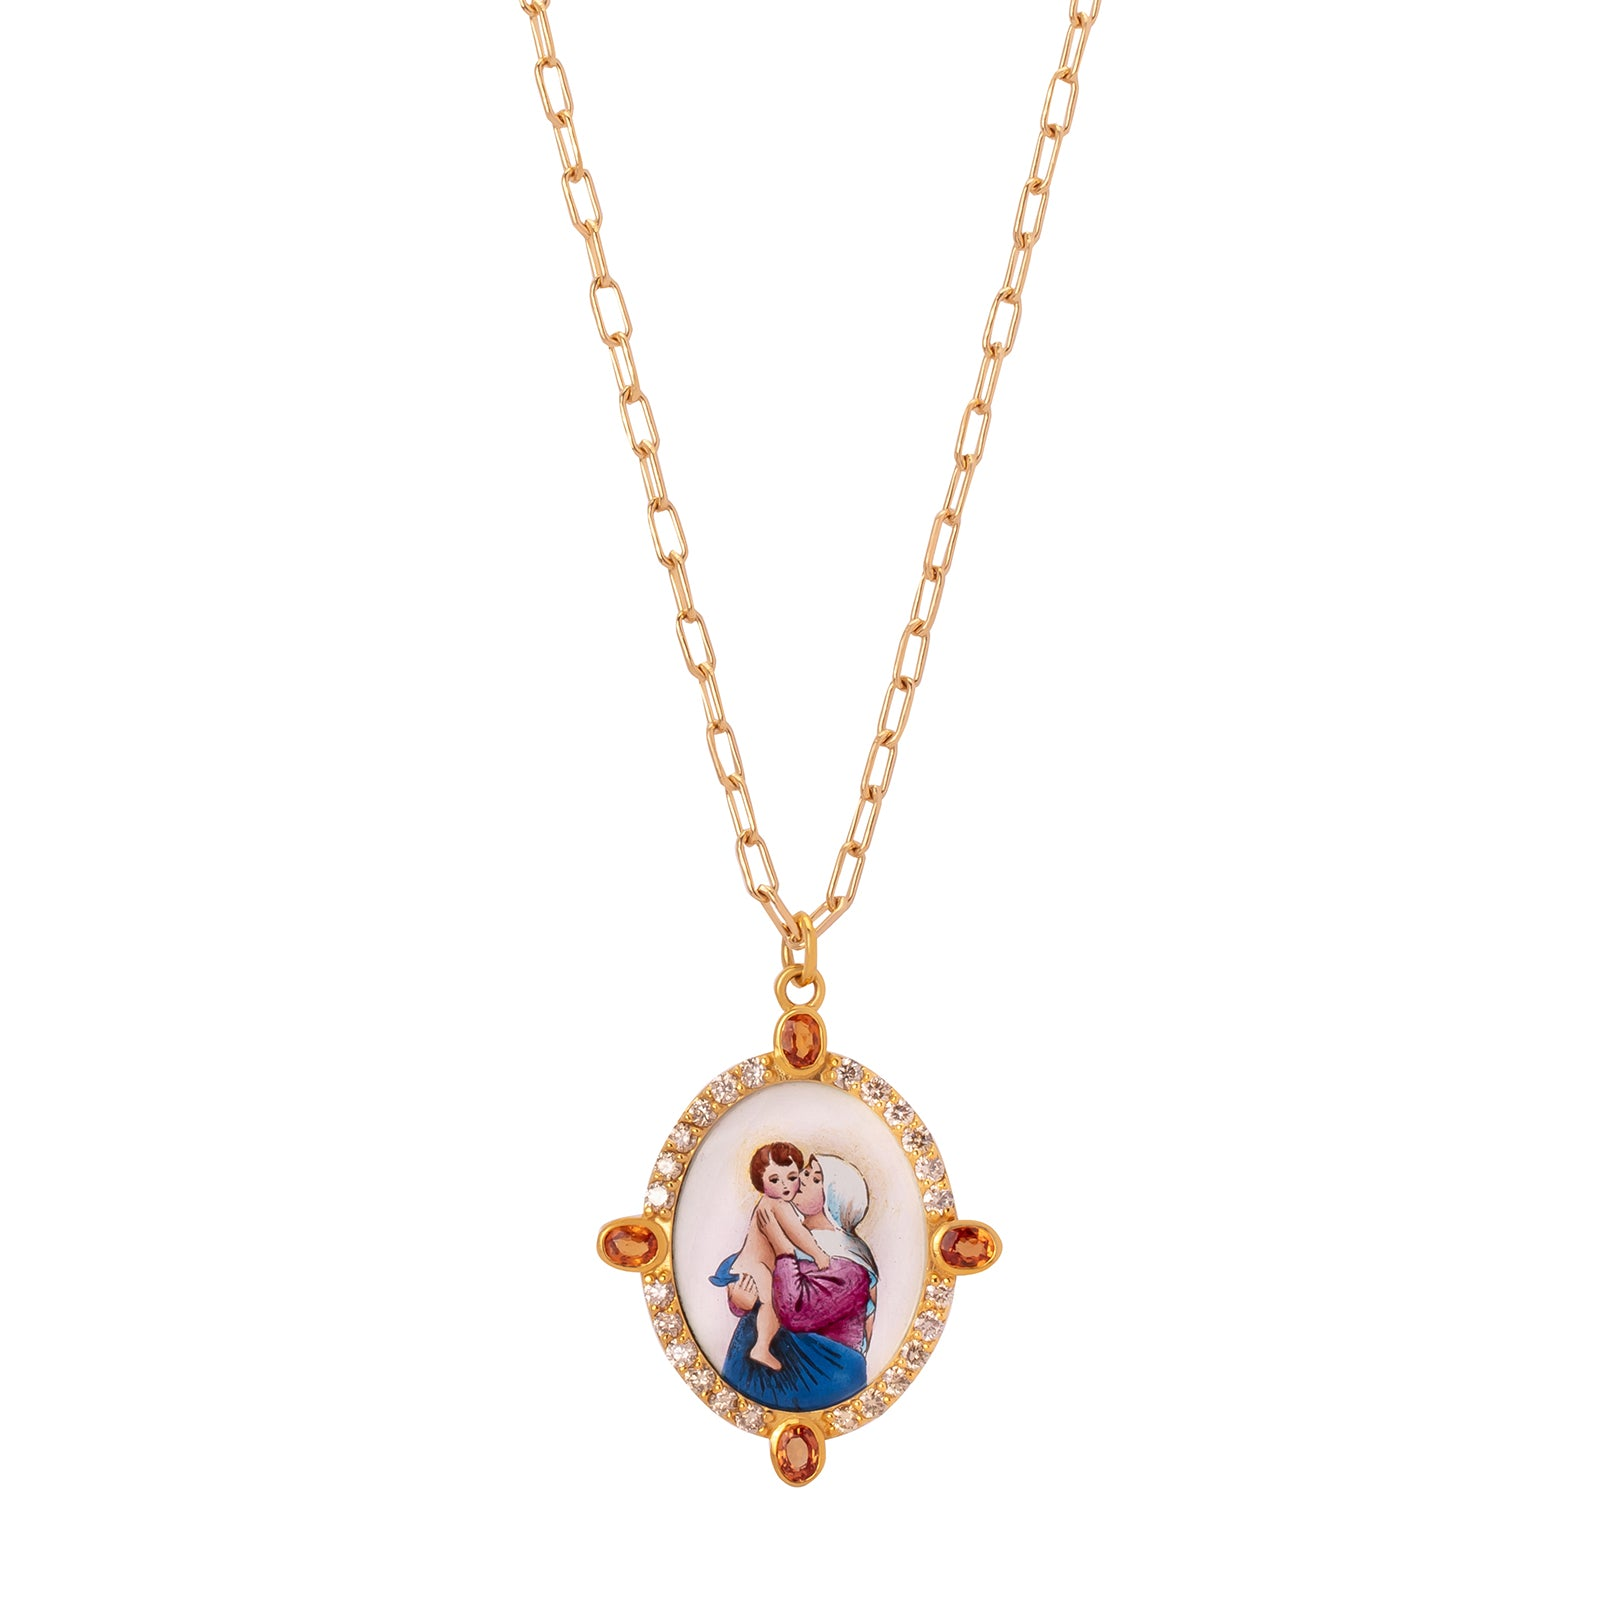 Colette Medallion Necklace - Champagne & Orange Sapphire - Necklaces - Broken English Jewelry